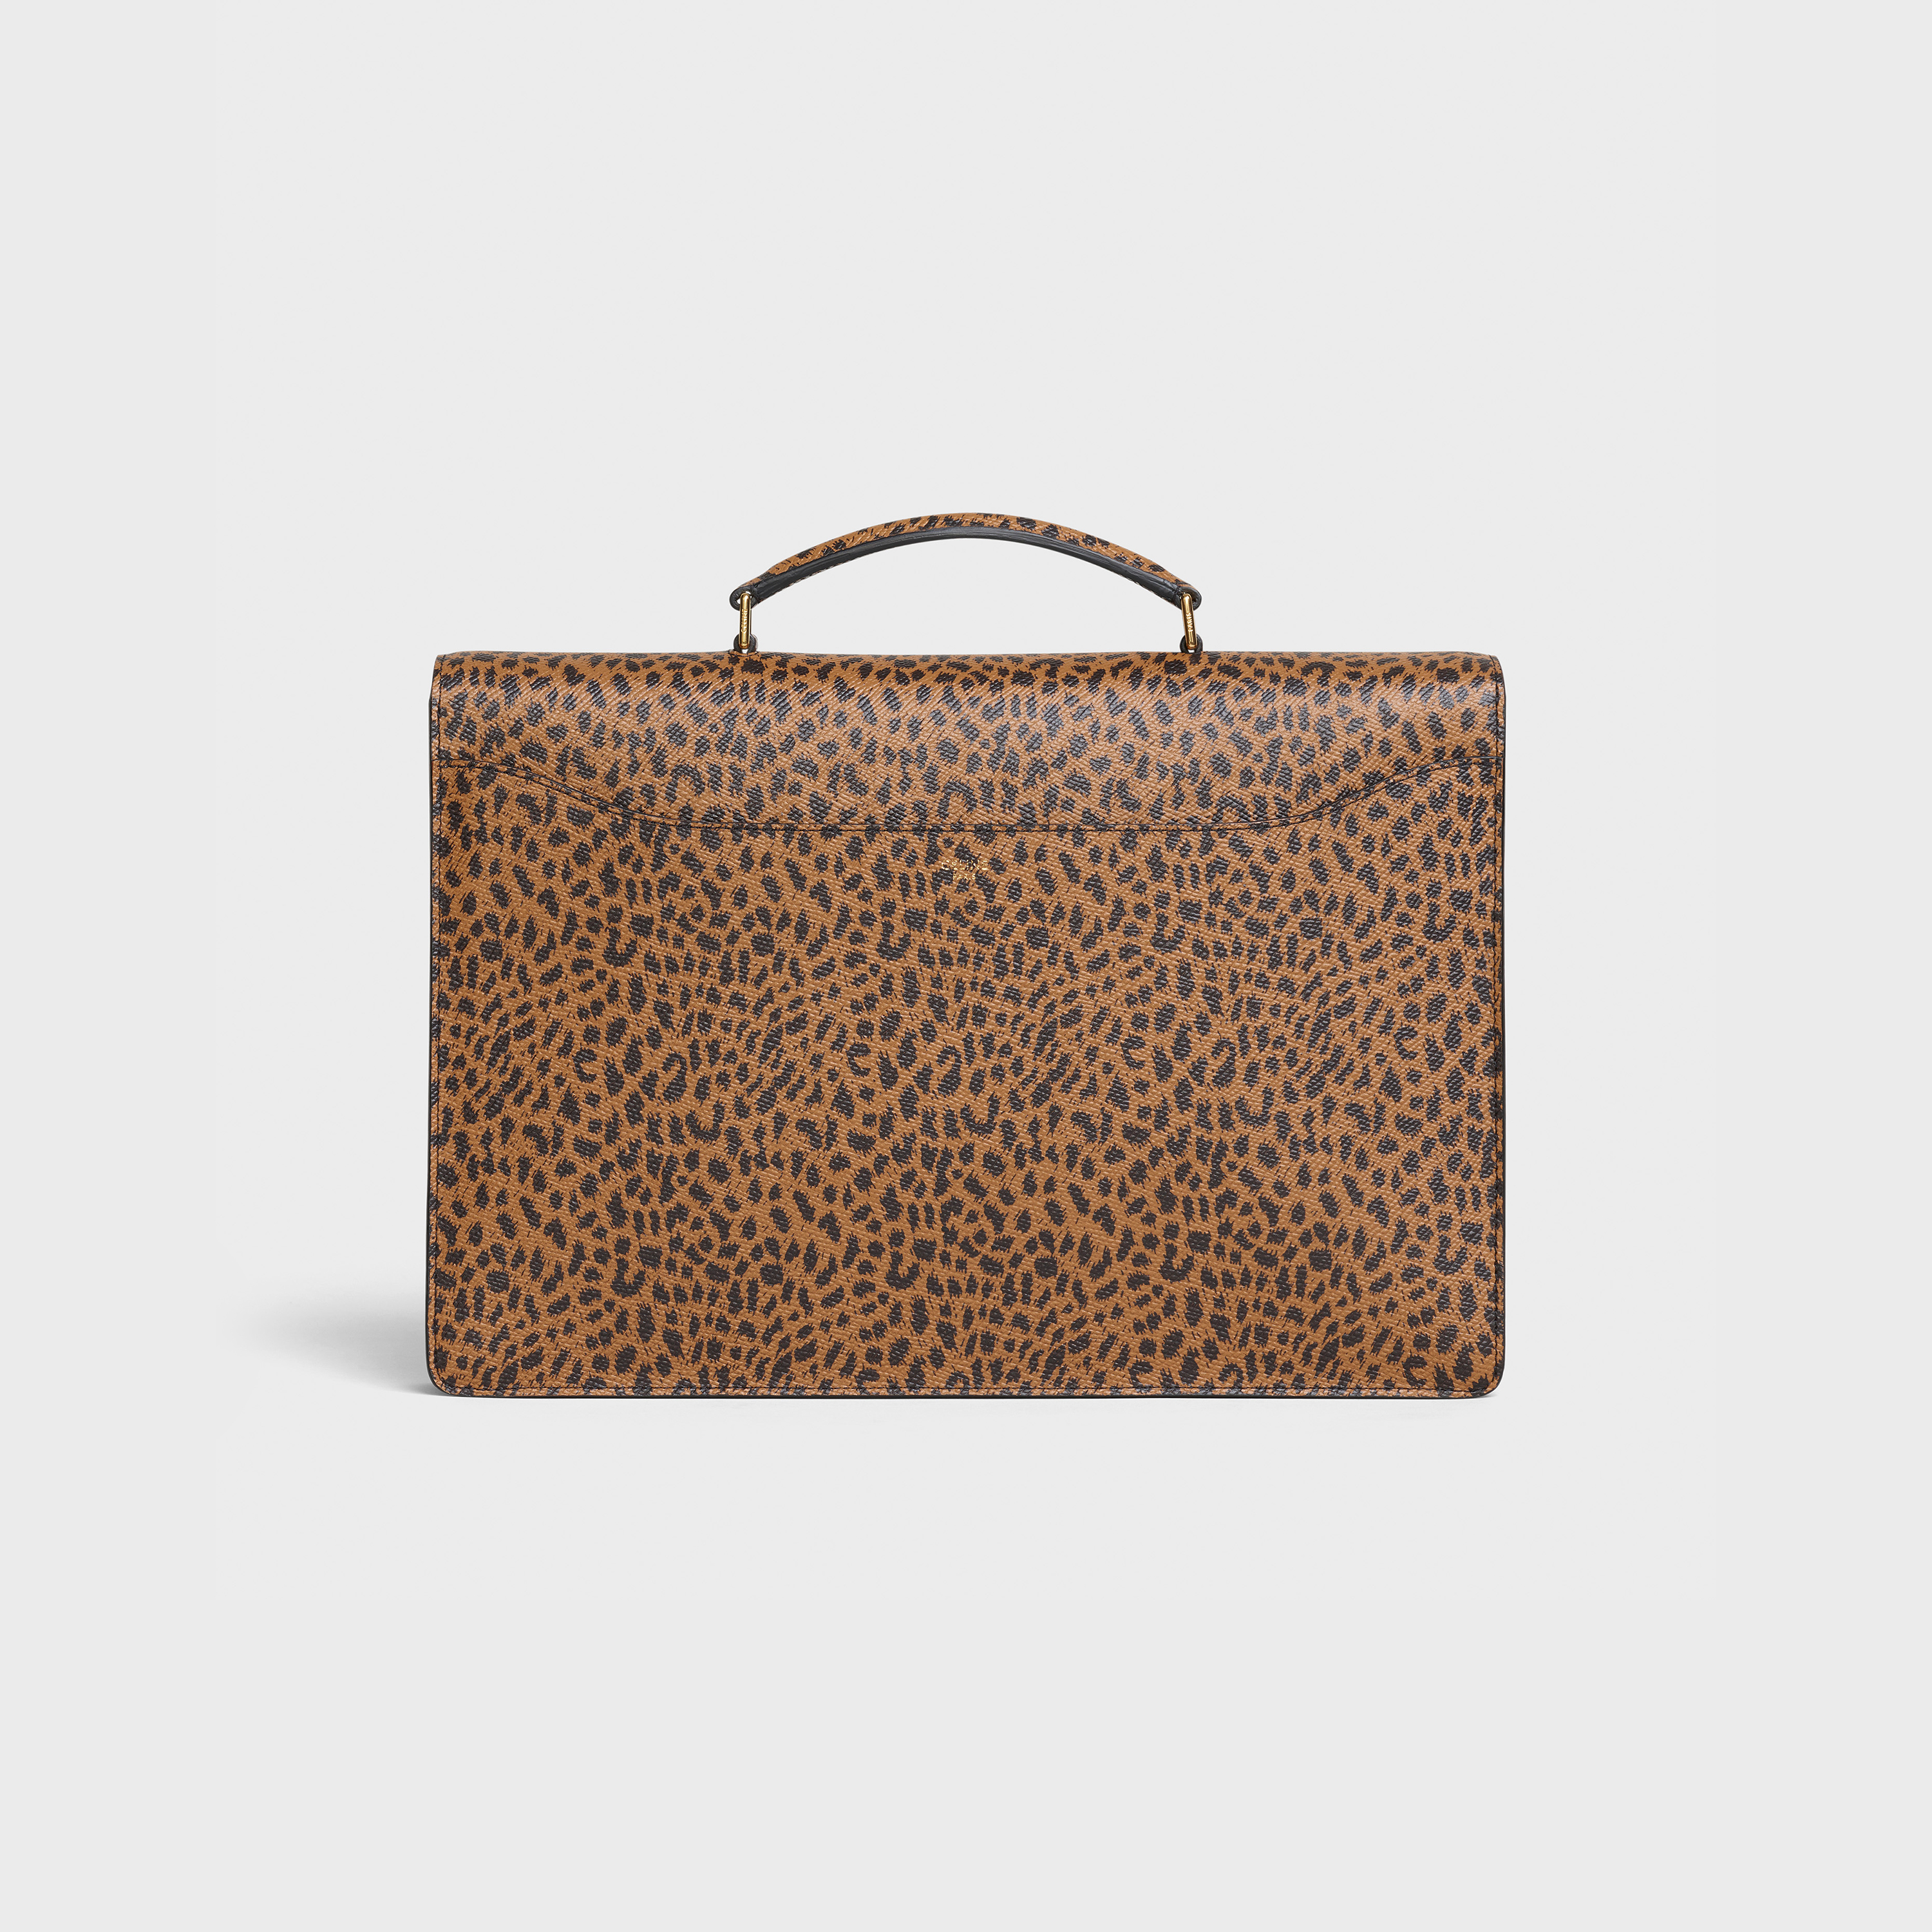 Small Cartable Bag in Grained Calfskin with Leopard print | CELINE